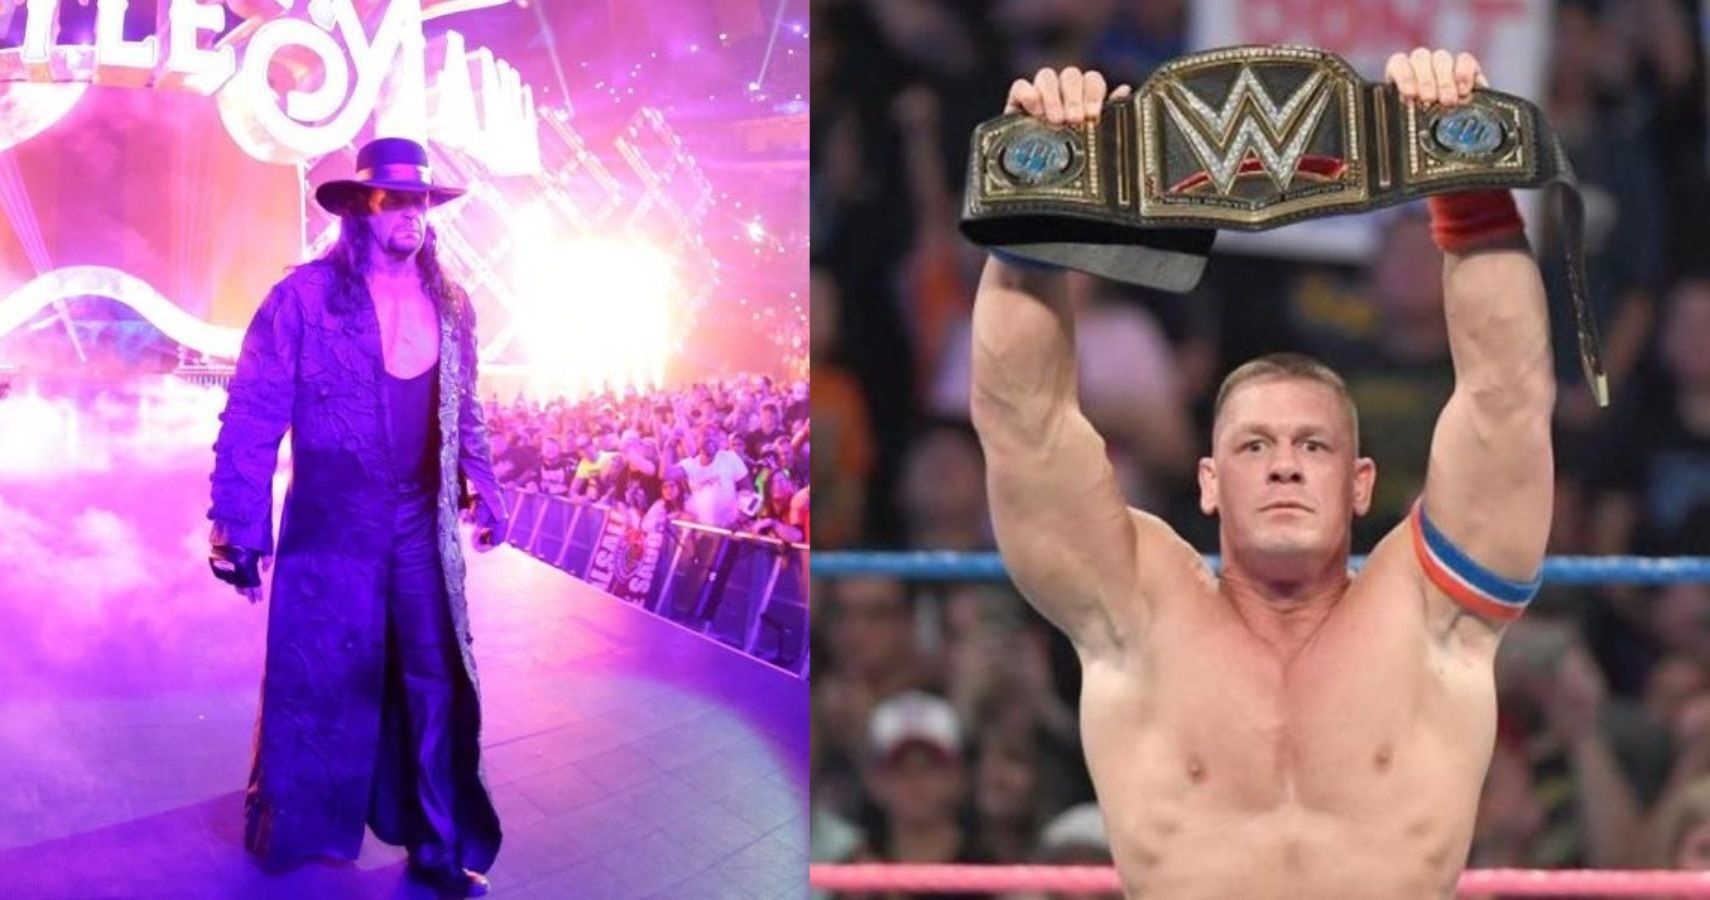 15 WWE Wrestlers With The Most Wins In History, Ranked